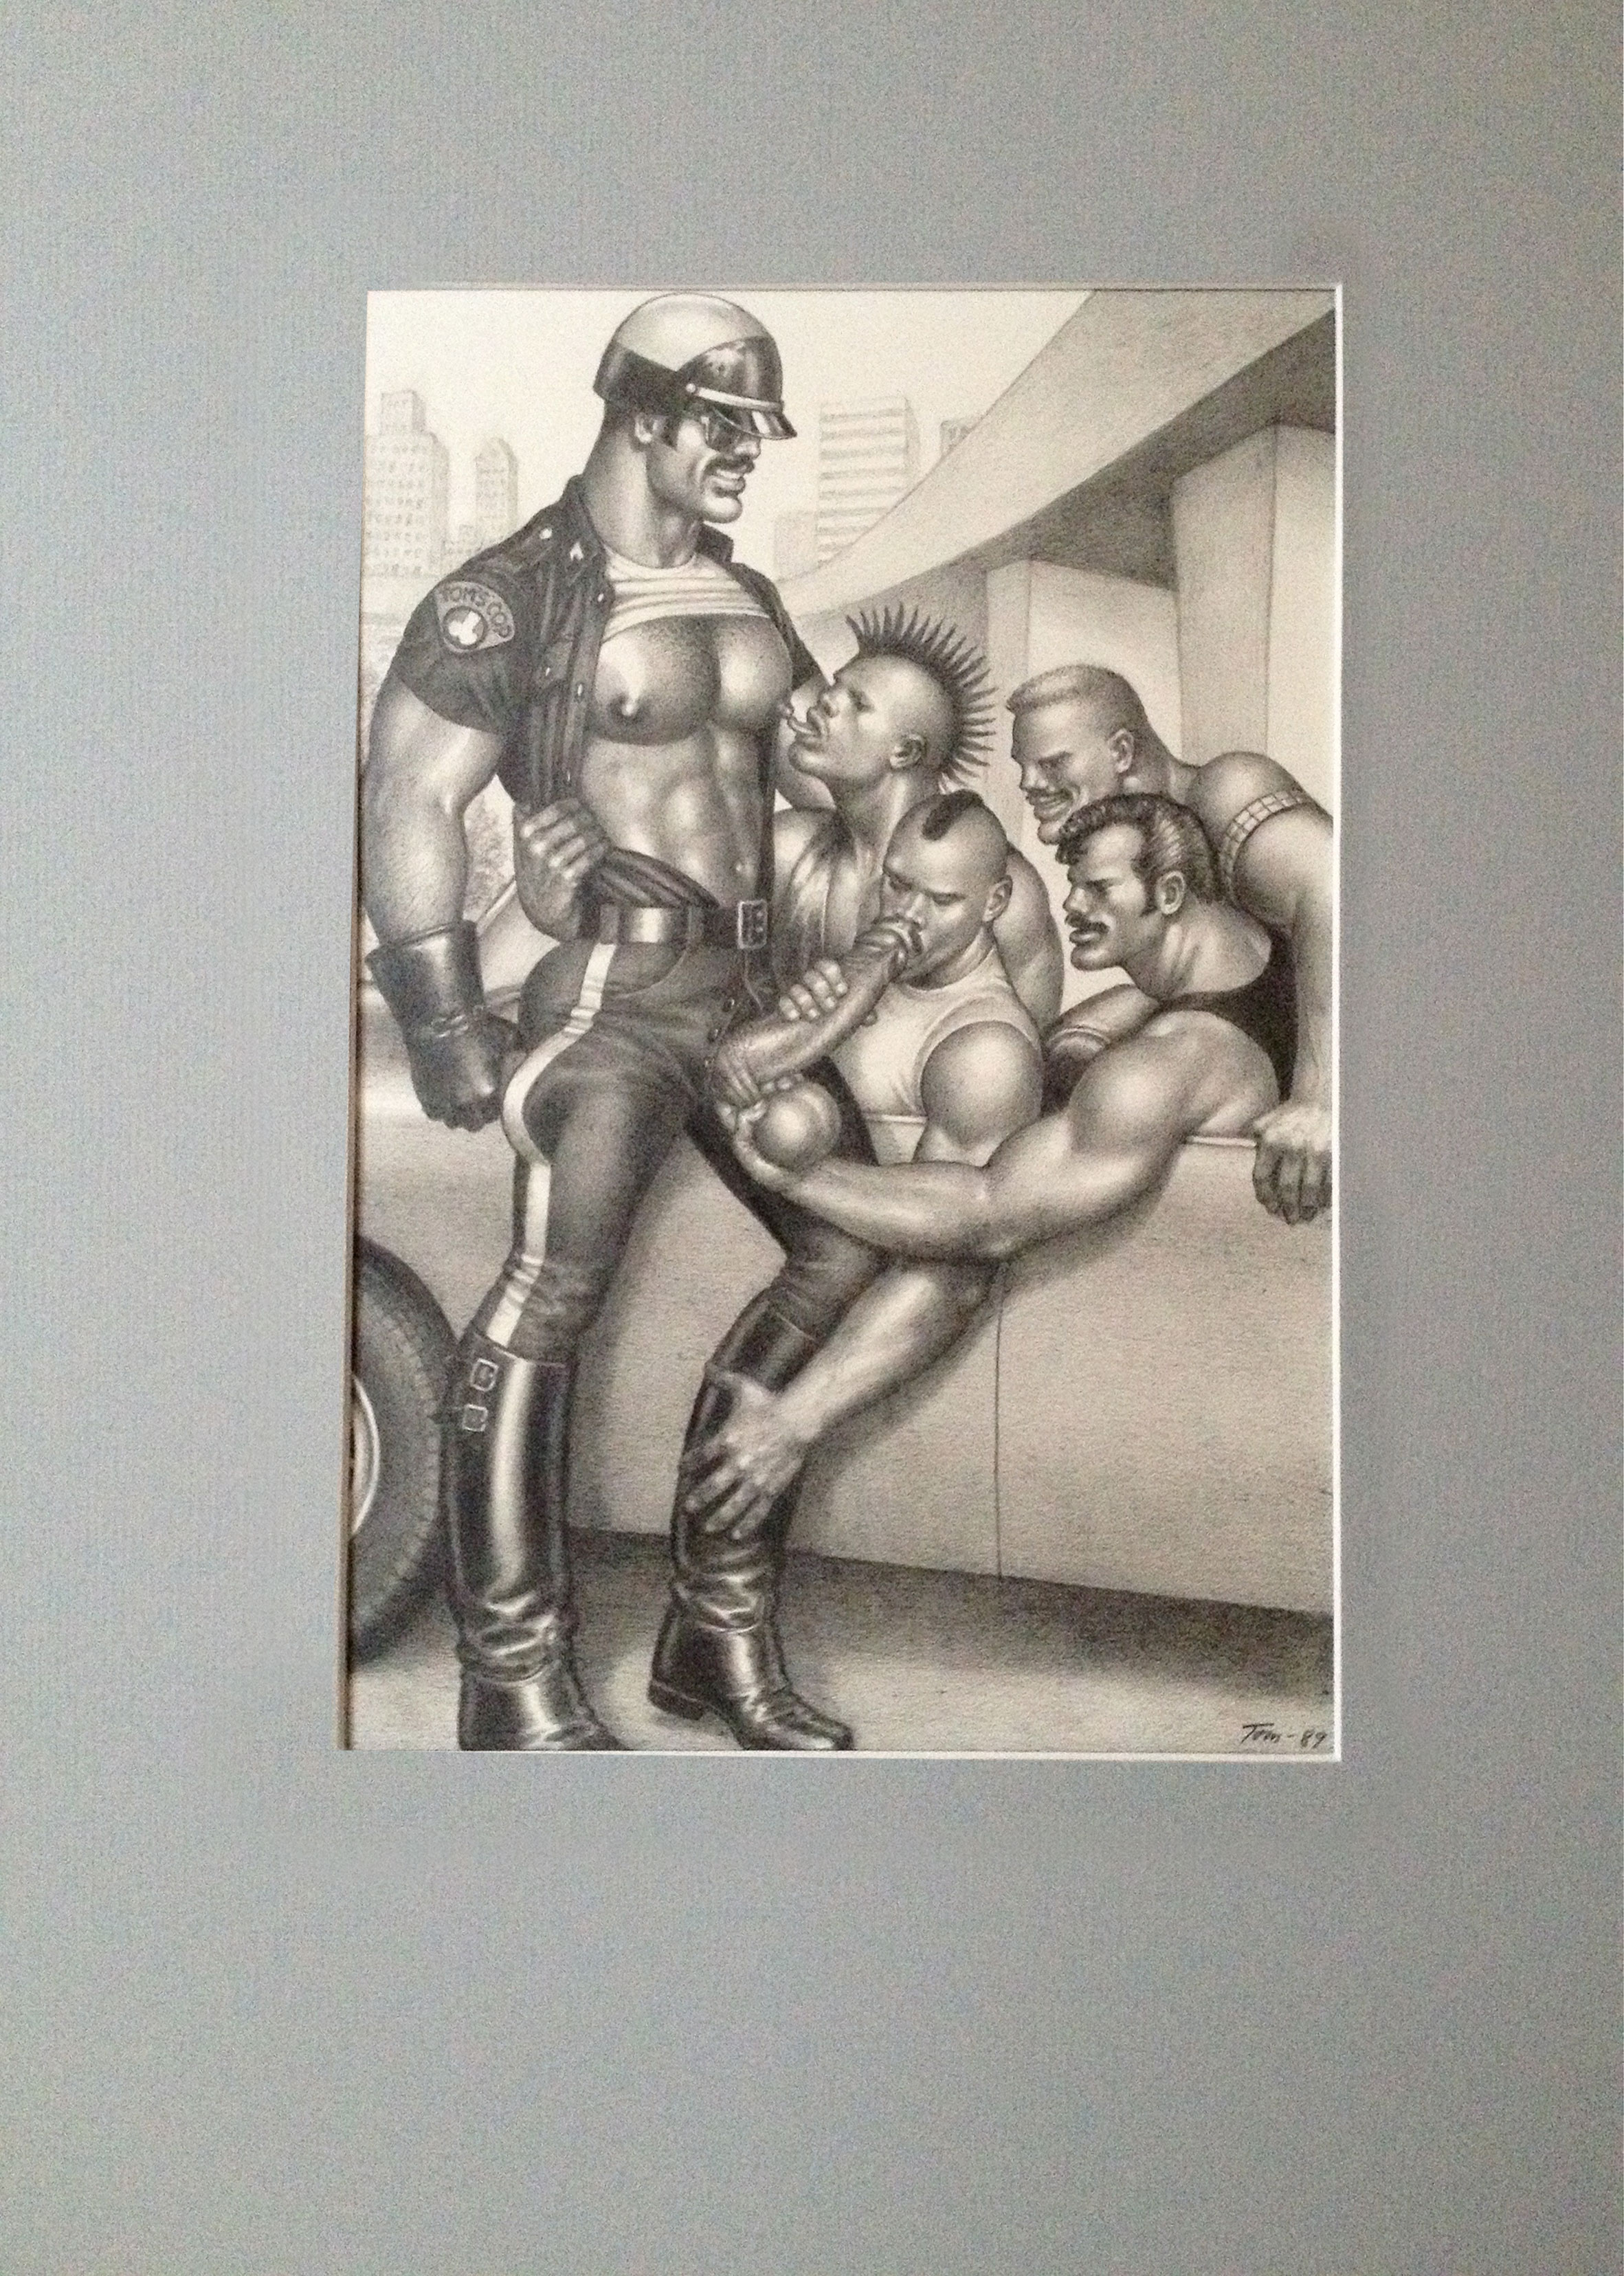 Tom of Finland Artwork Original - Part of The Saint Foundation Archives